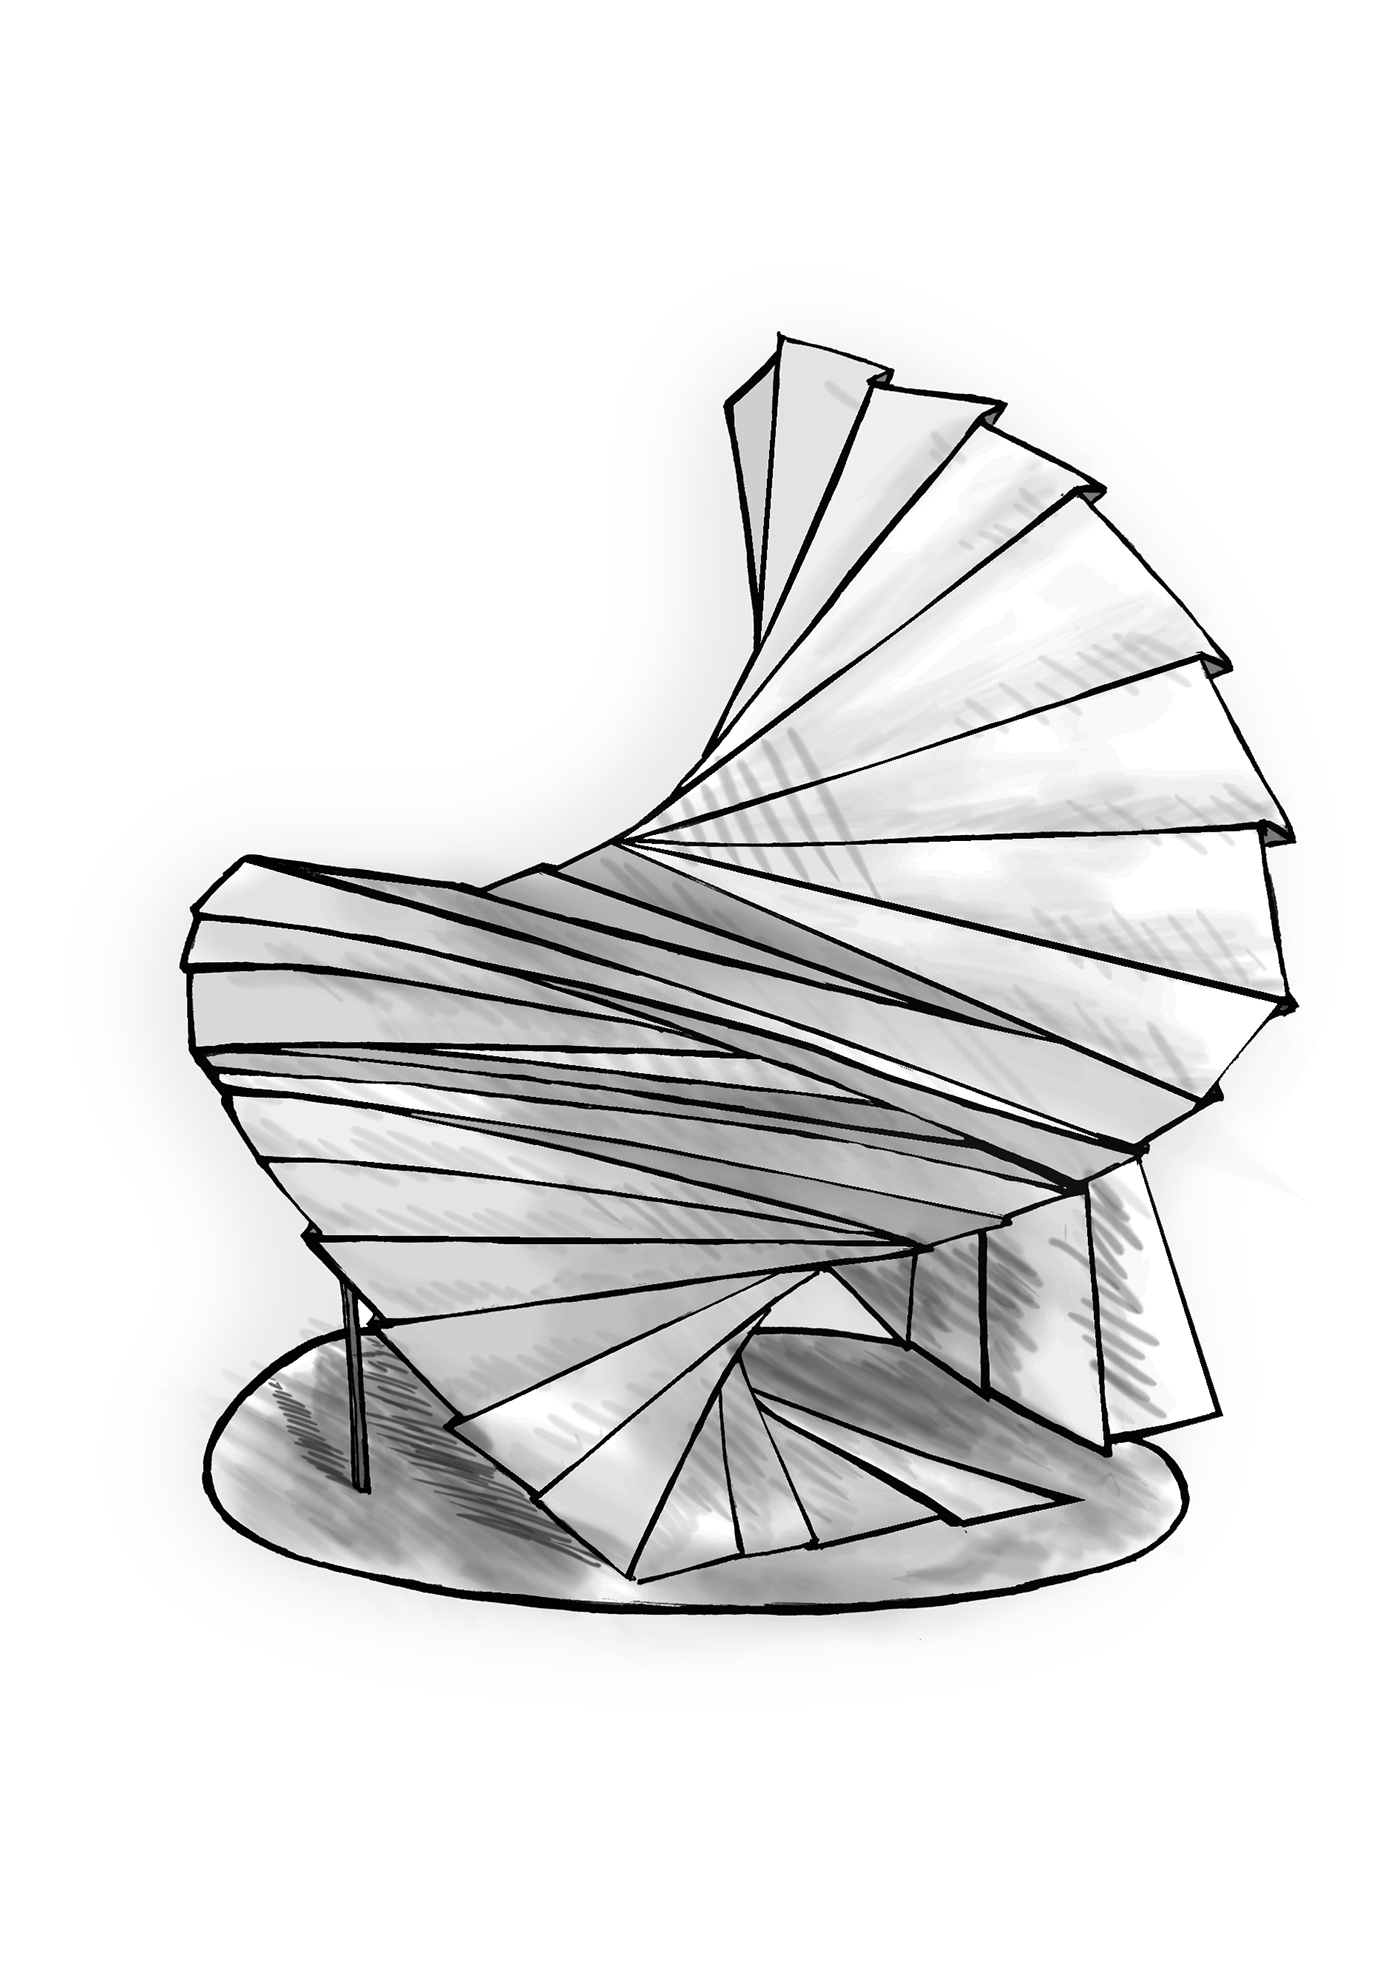 Sculptural drawing architectural. Paper sculpture on behance